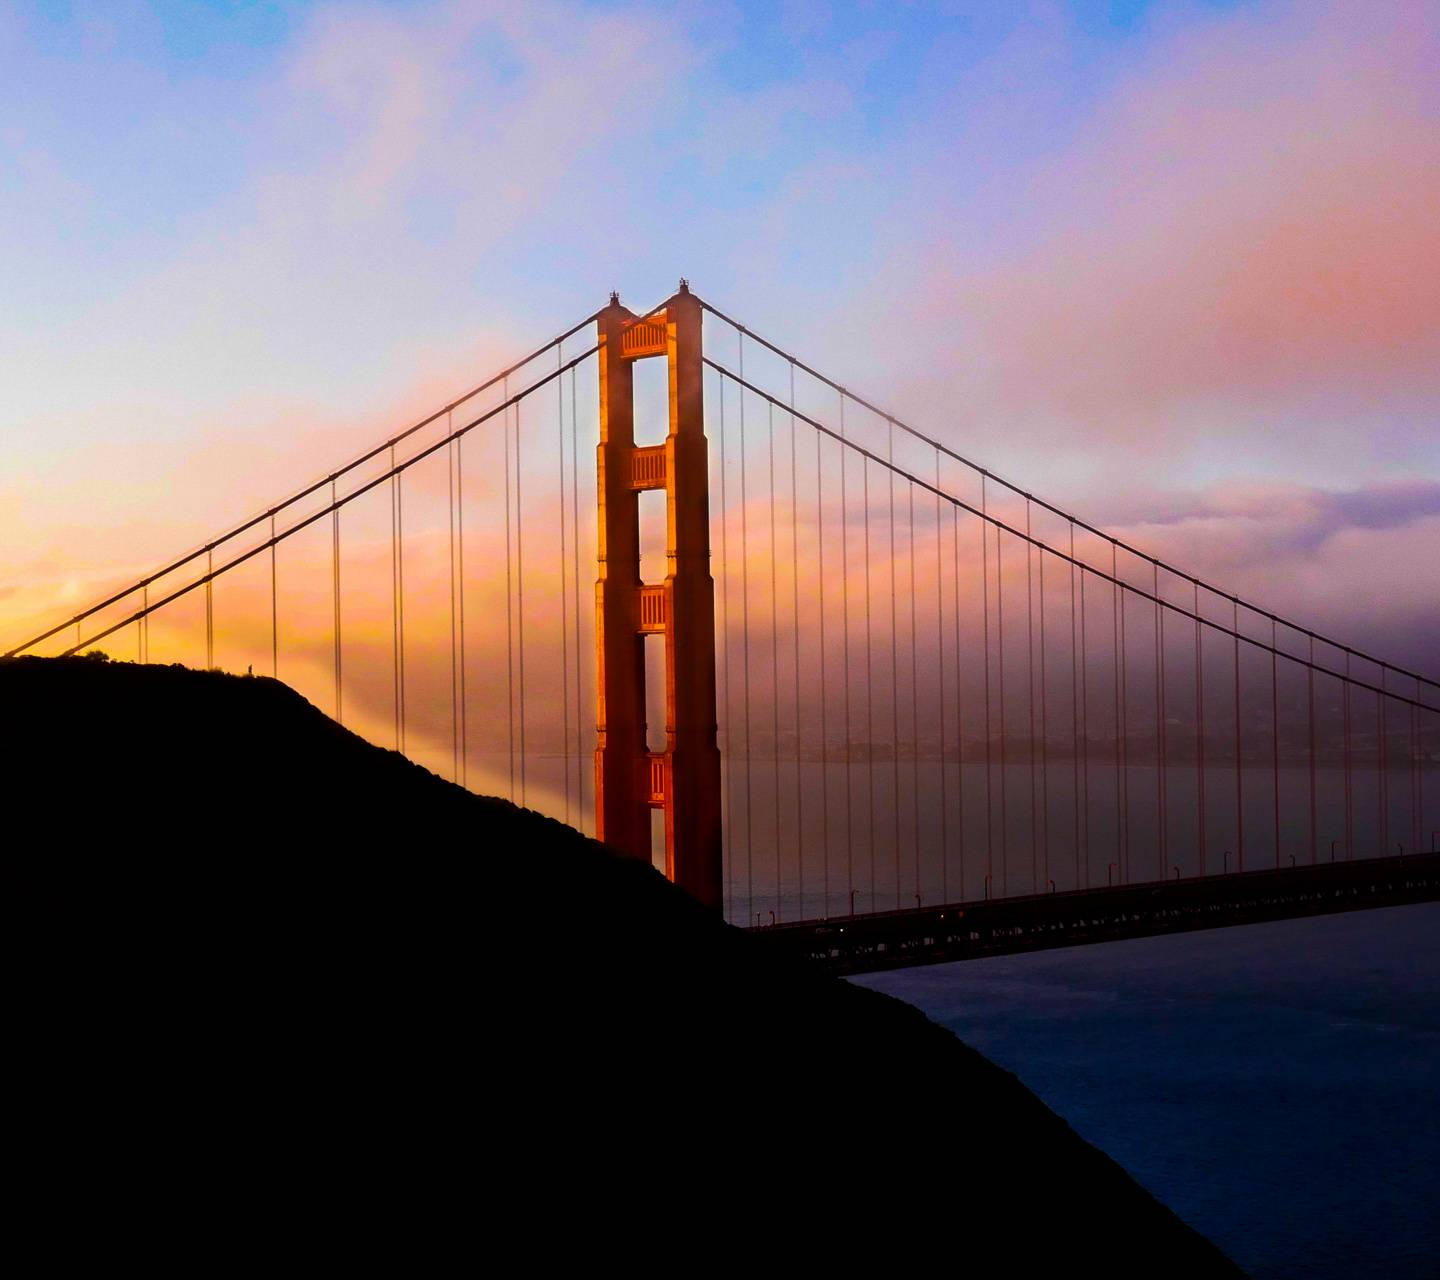 Golden Gate early